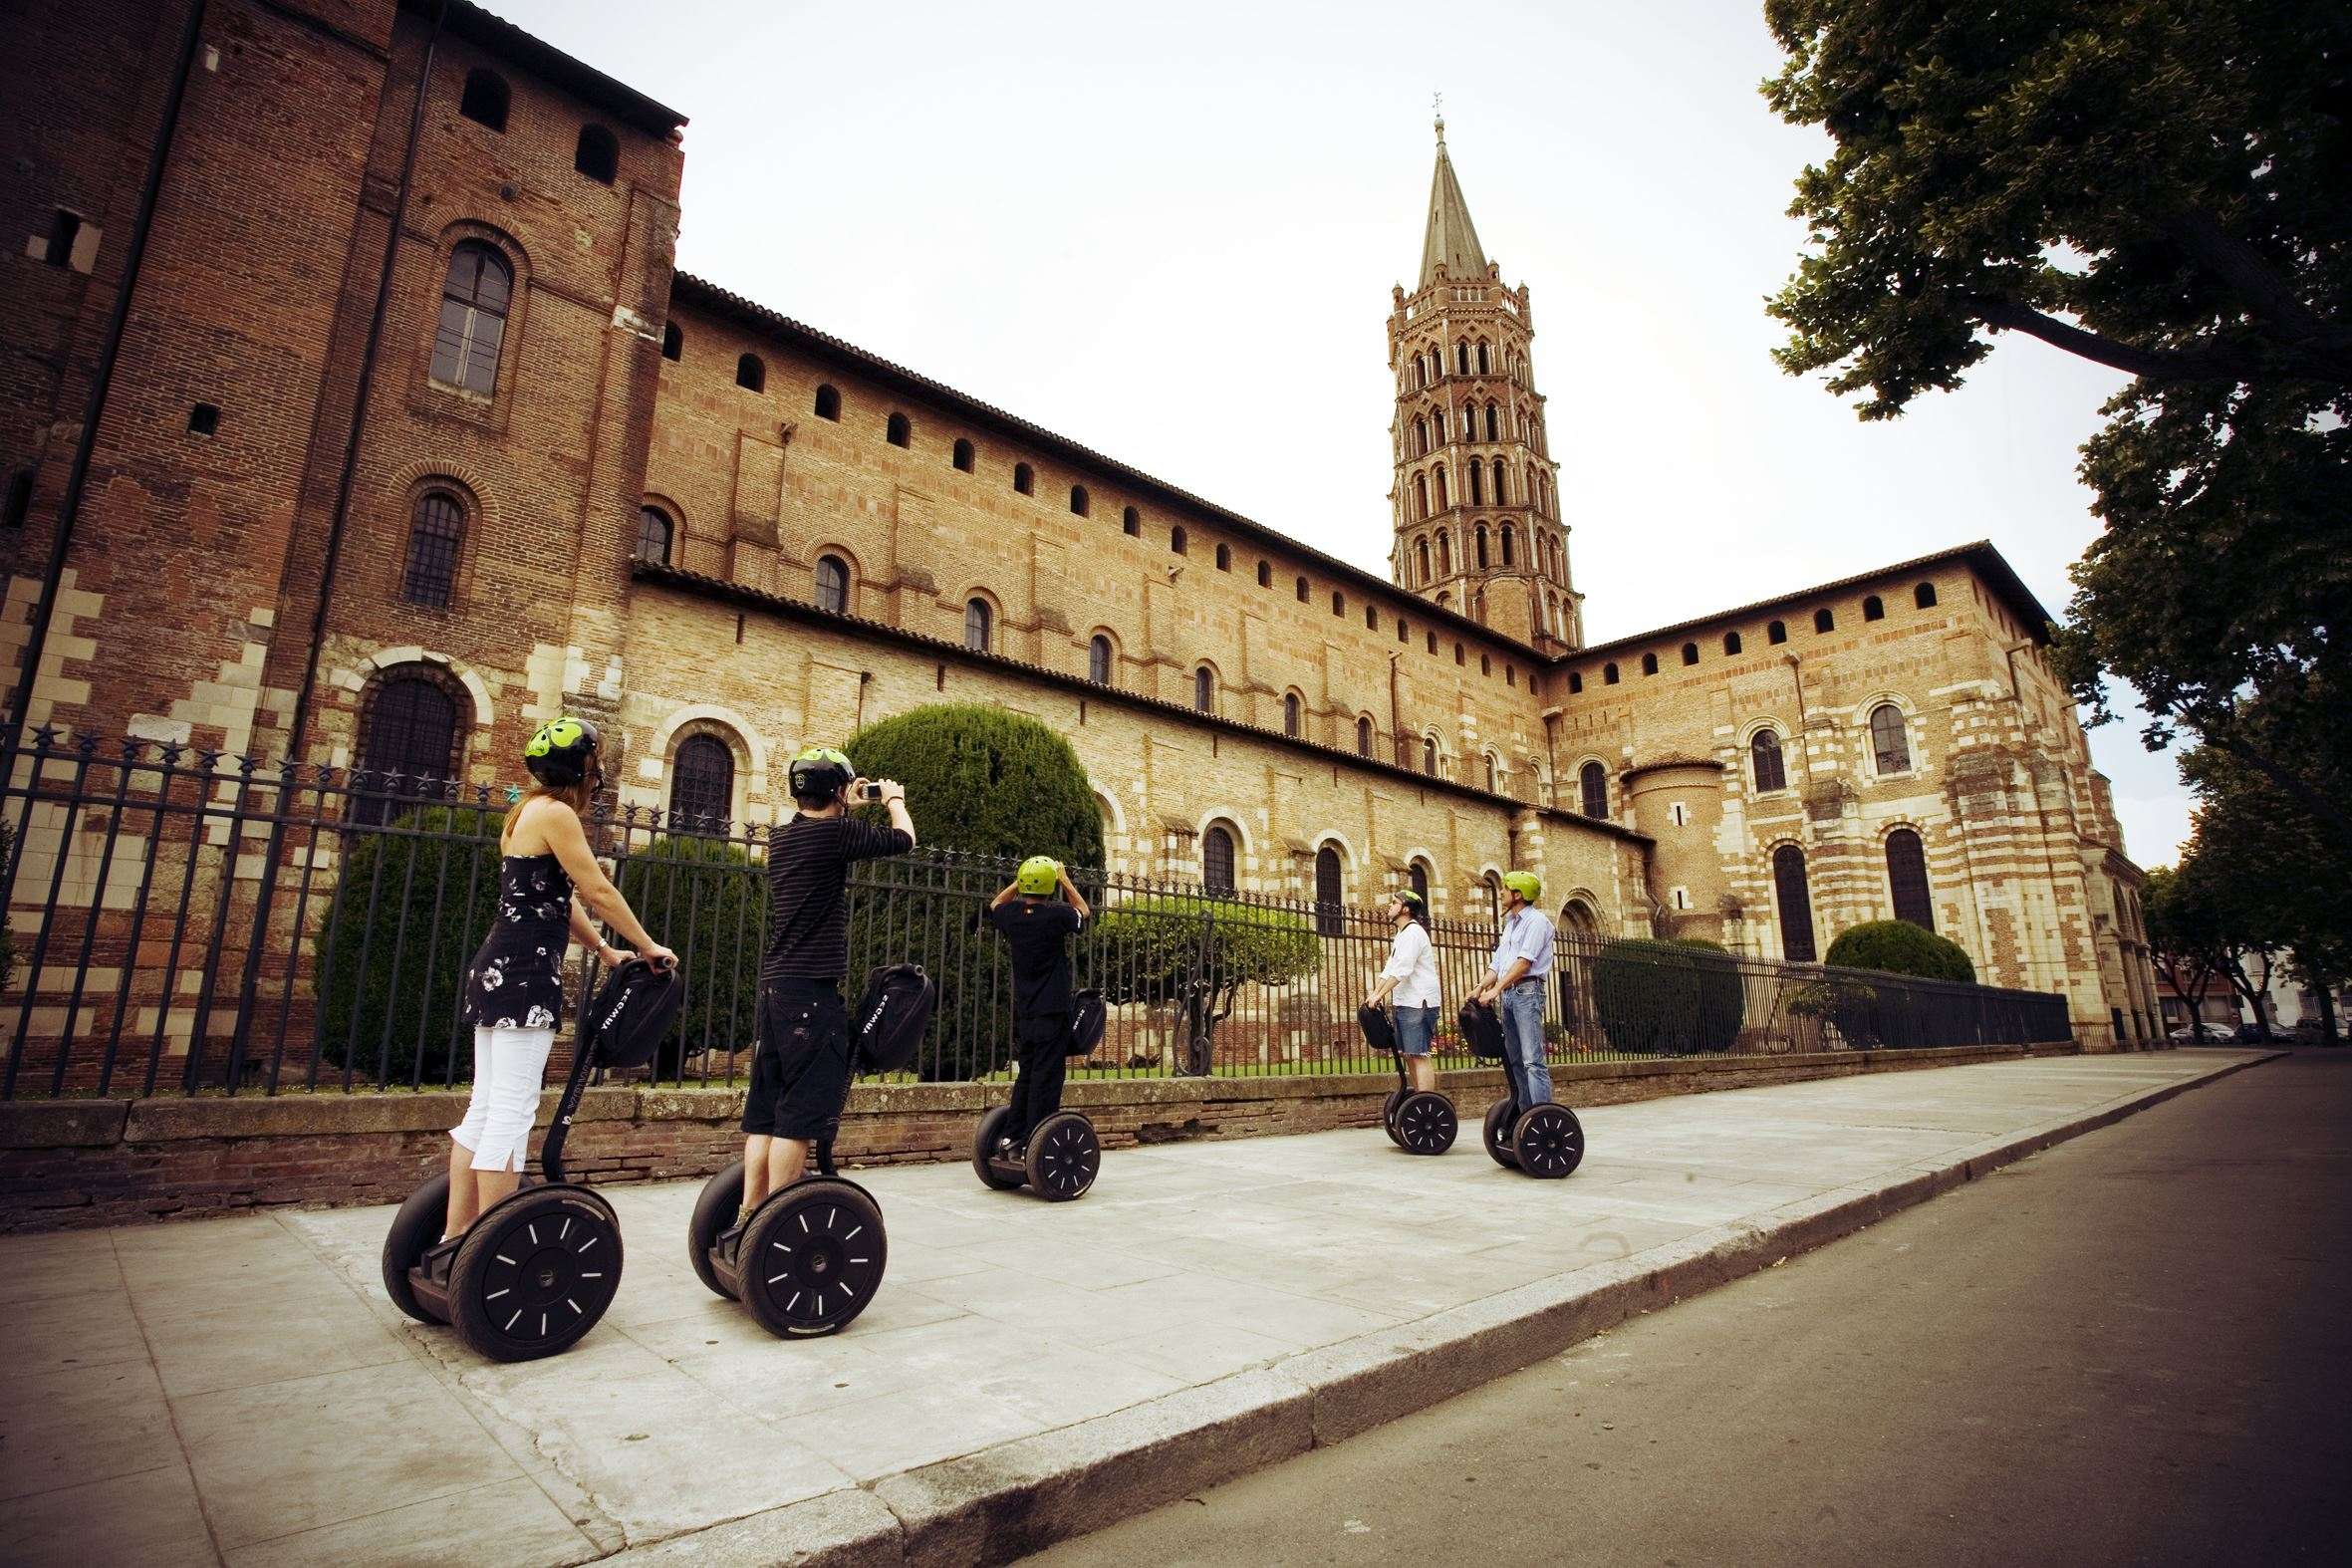 Book your Segway experience